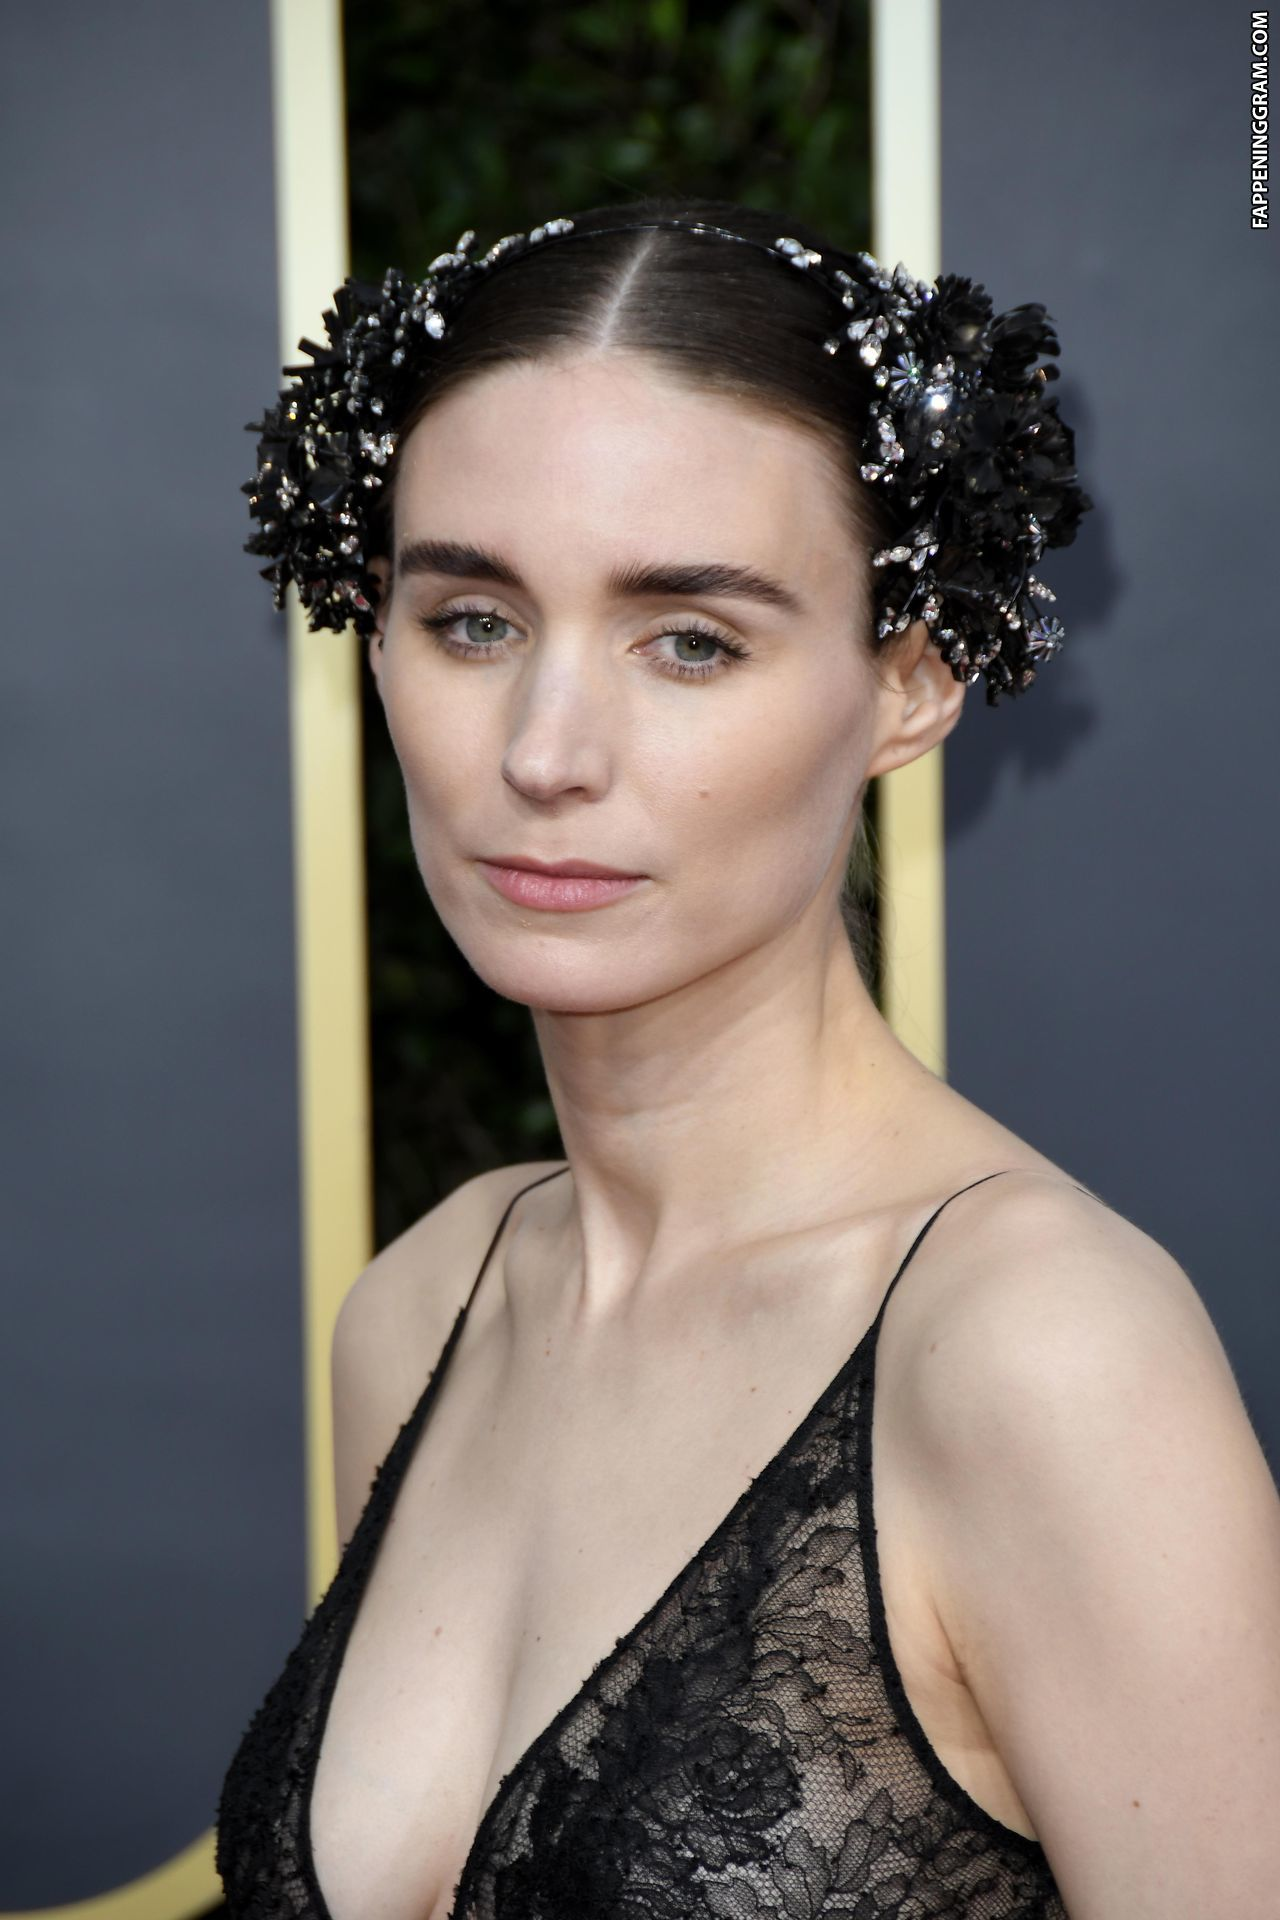 Rooney Mara Nude The Fappening